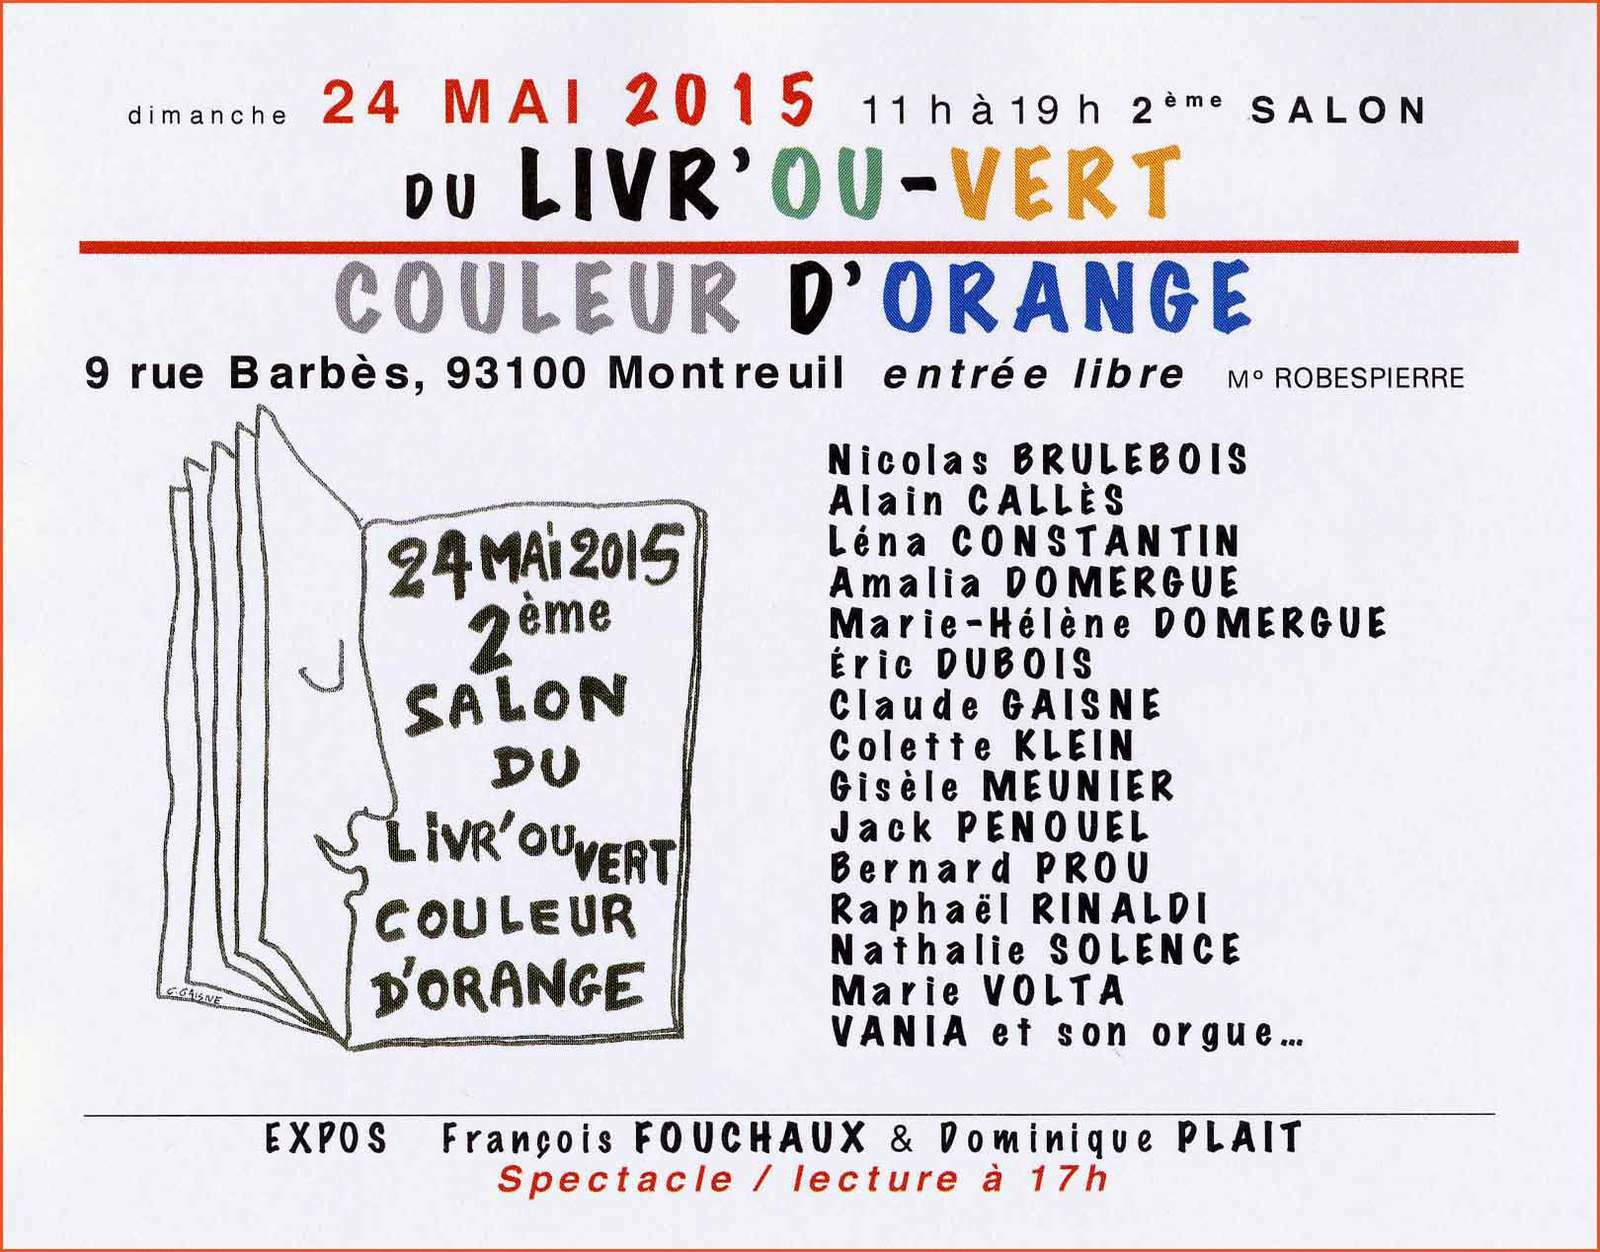 2 ème Salon Liv'ouver Couleur d'orange 2015- DR